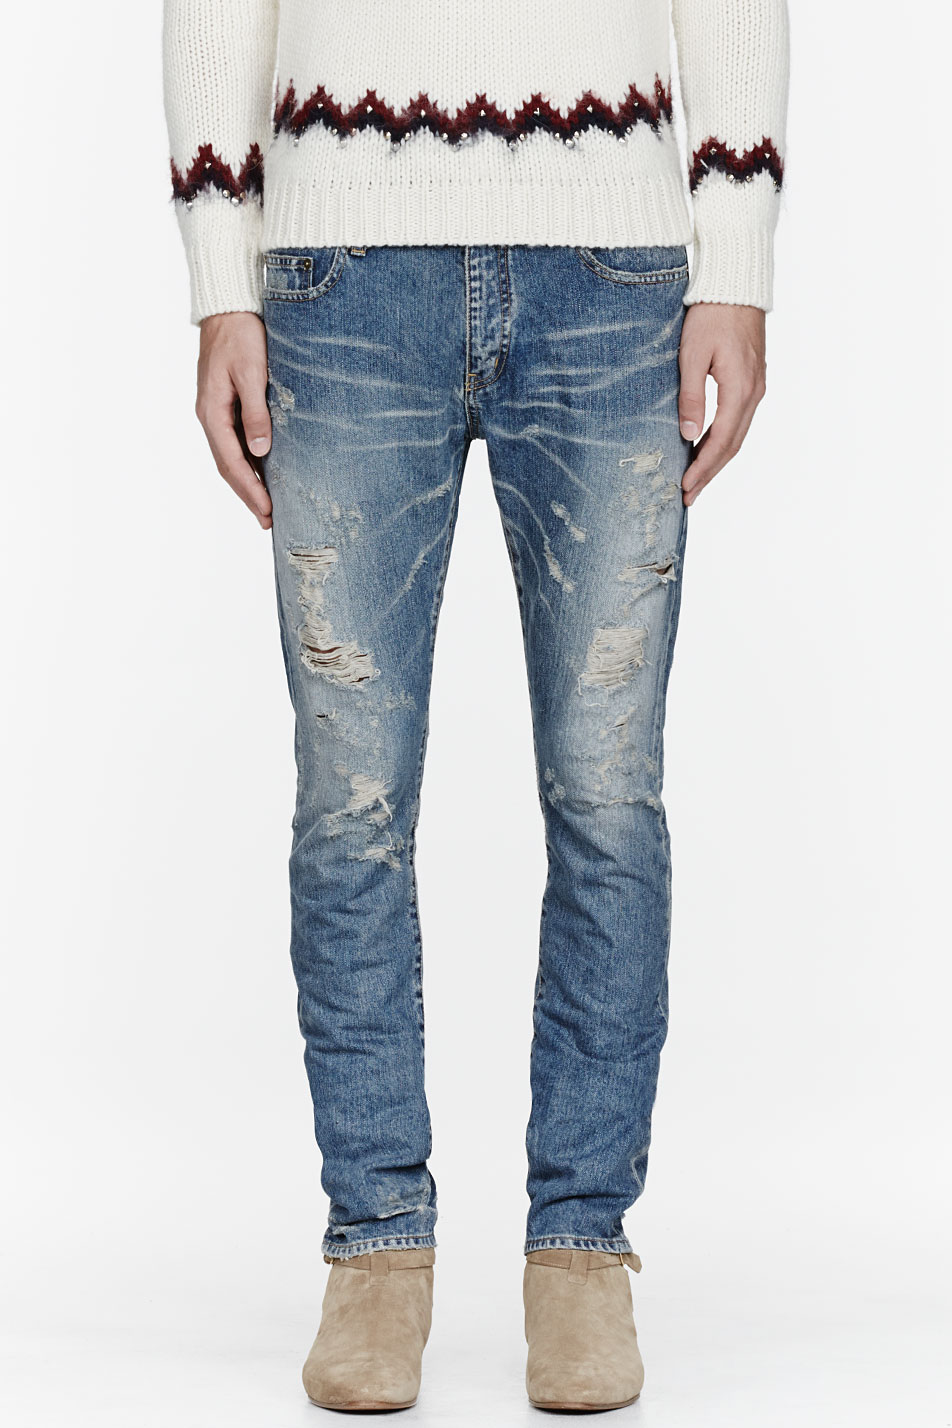 saint laurent light blue destroyed jeans in blue for men. Black Bedroom Furniture Sets. Home Design Ideas